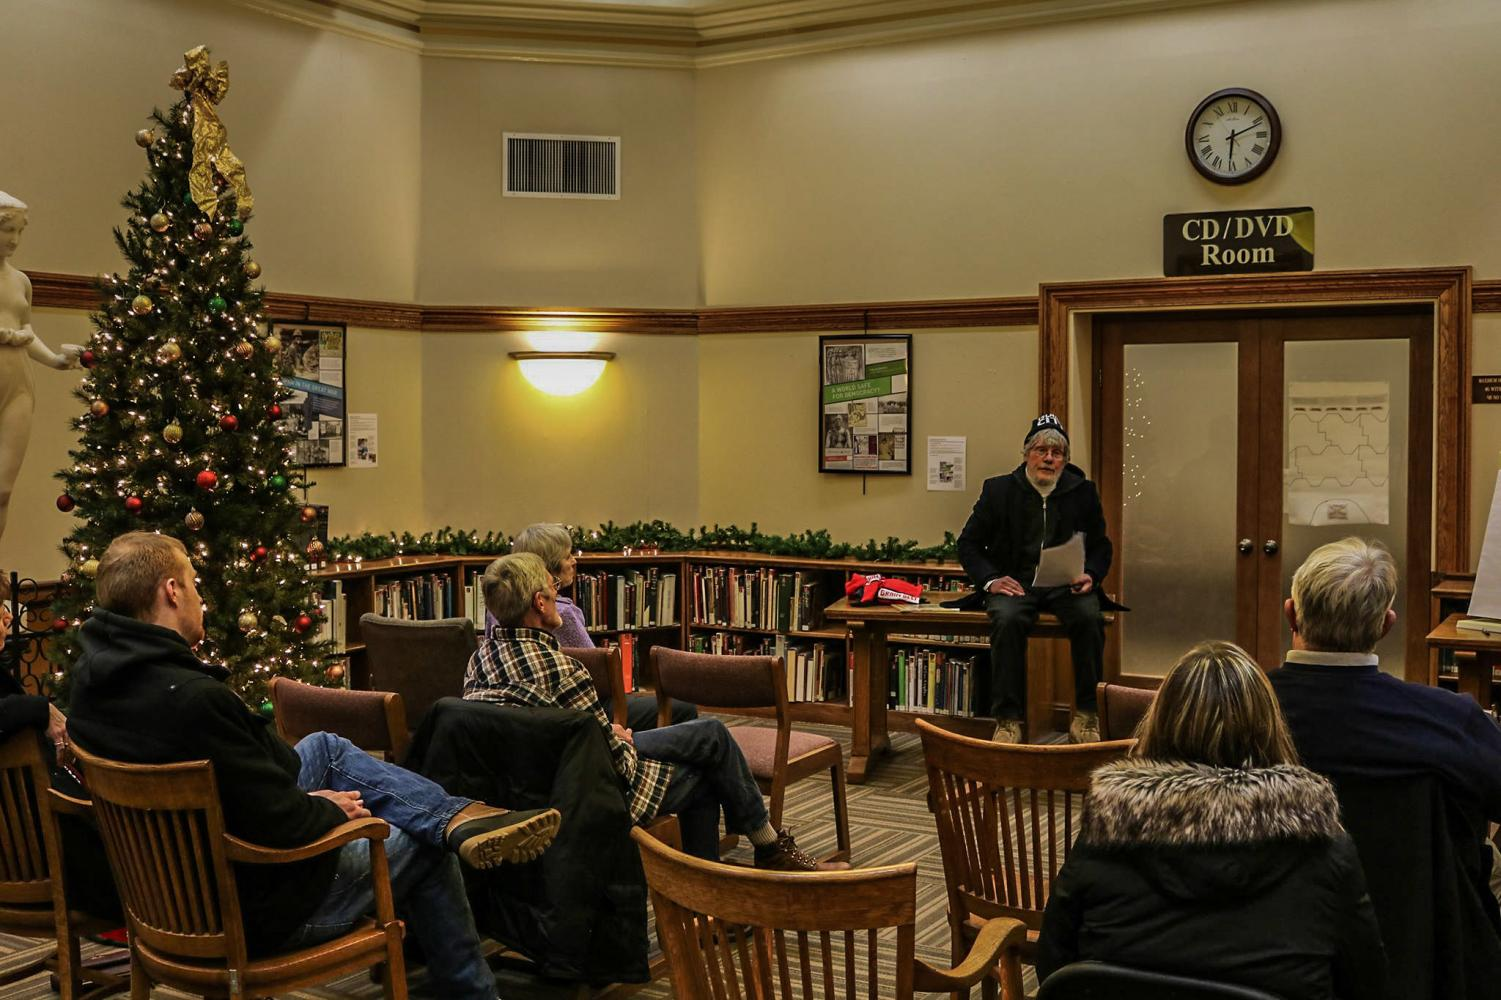 """Scot Simpson, volunteer at Winona County Historical Society, gives a presentation titled """"The War to End All Wars... or Not: A Brief Overview of the First World War""""."""